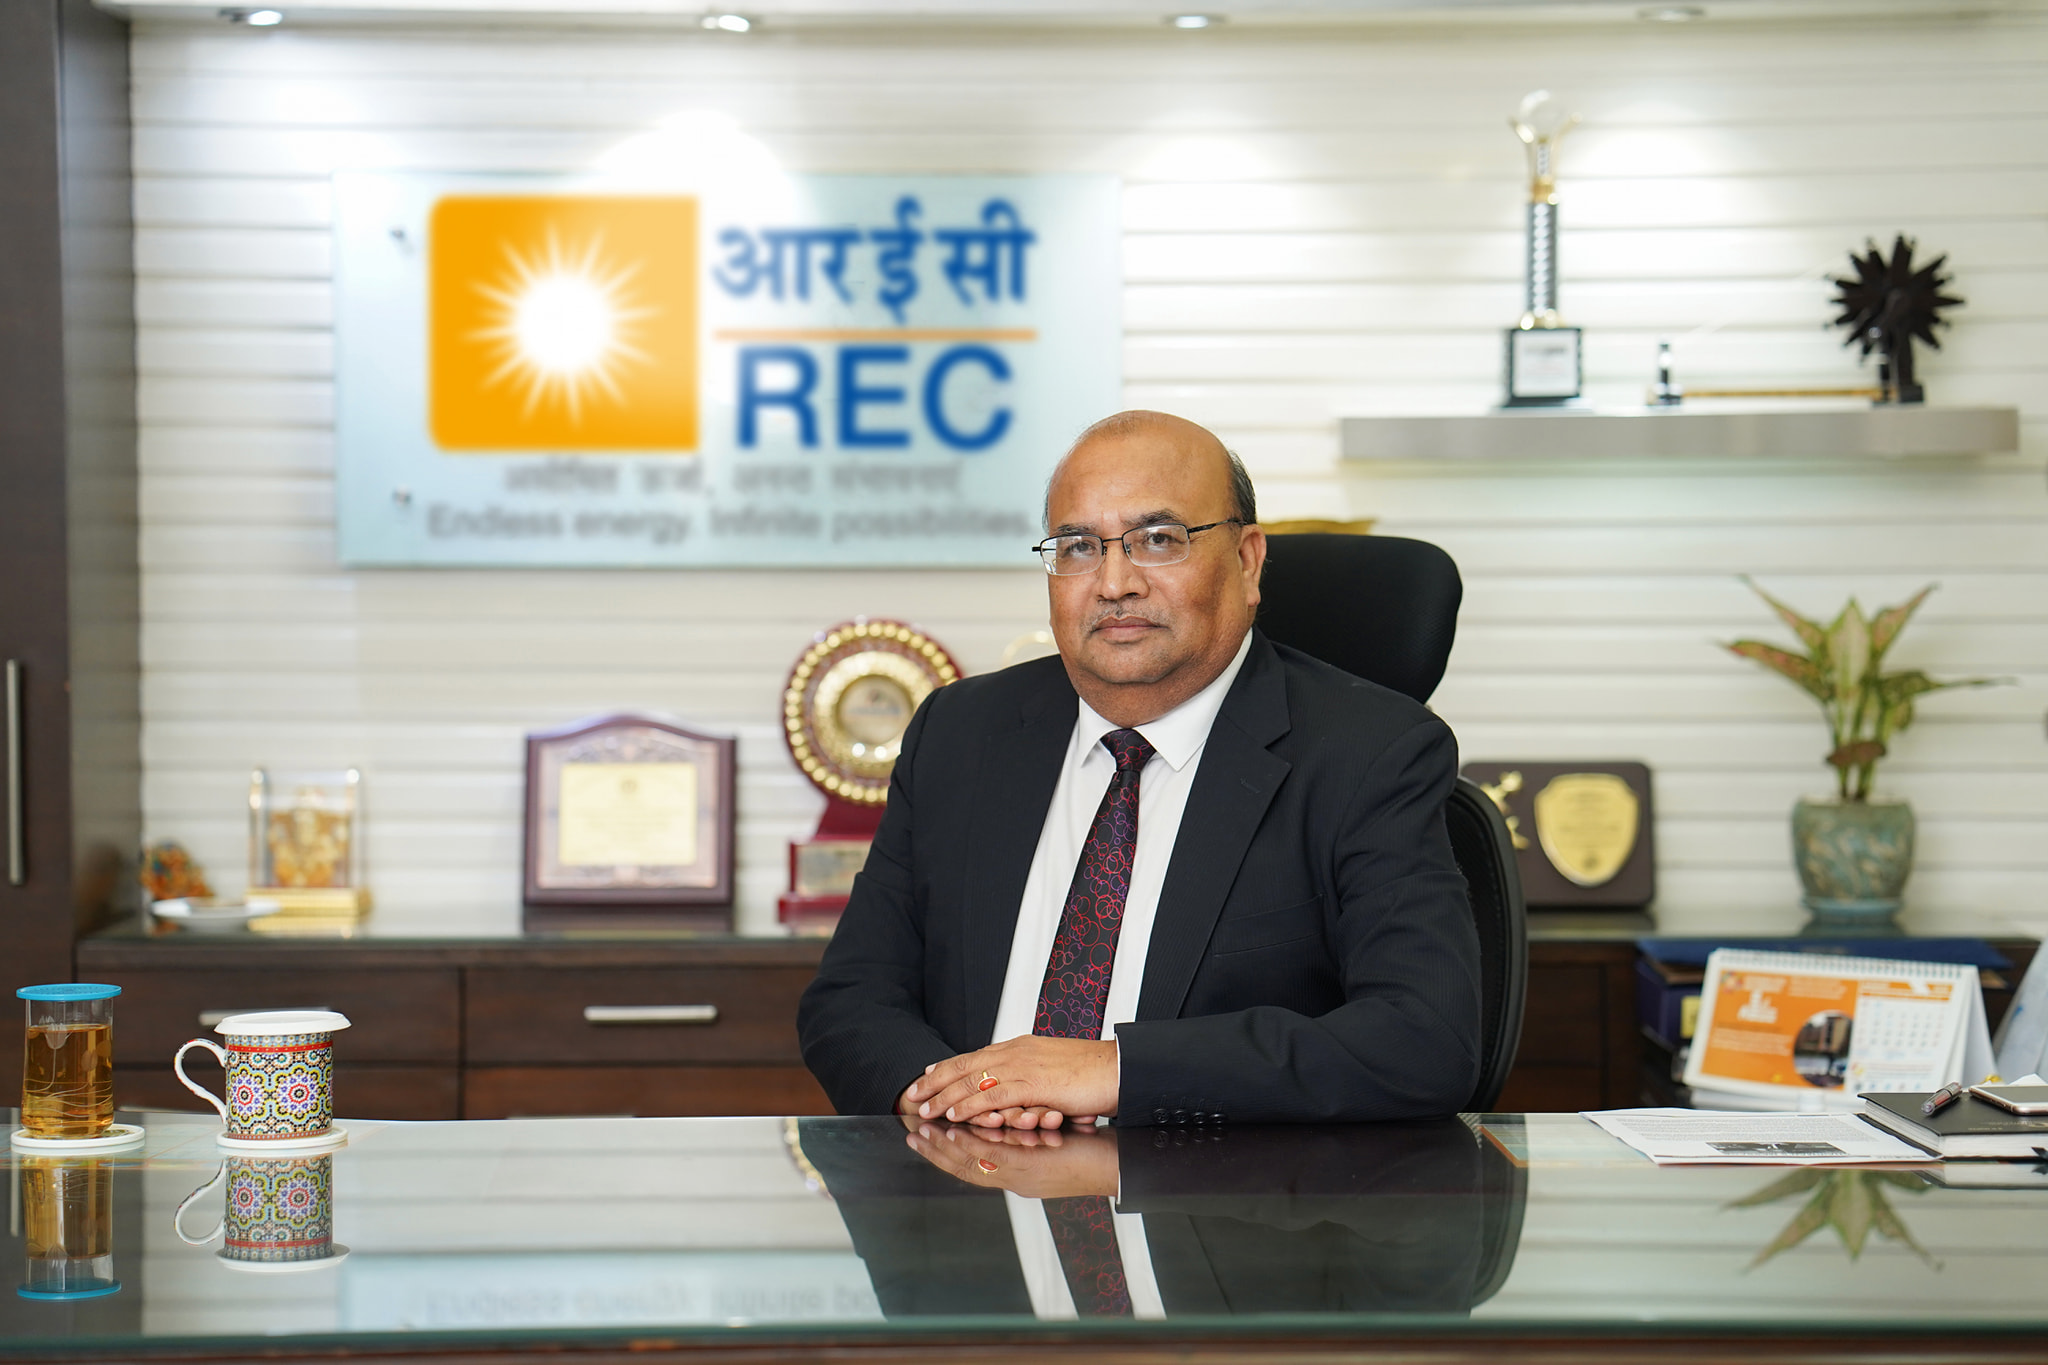 51st Annual General Meeting of REC Limited